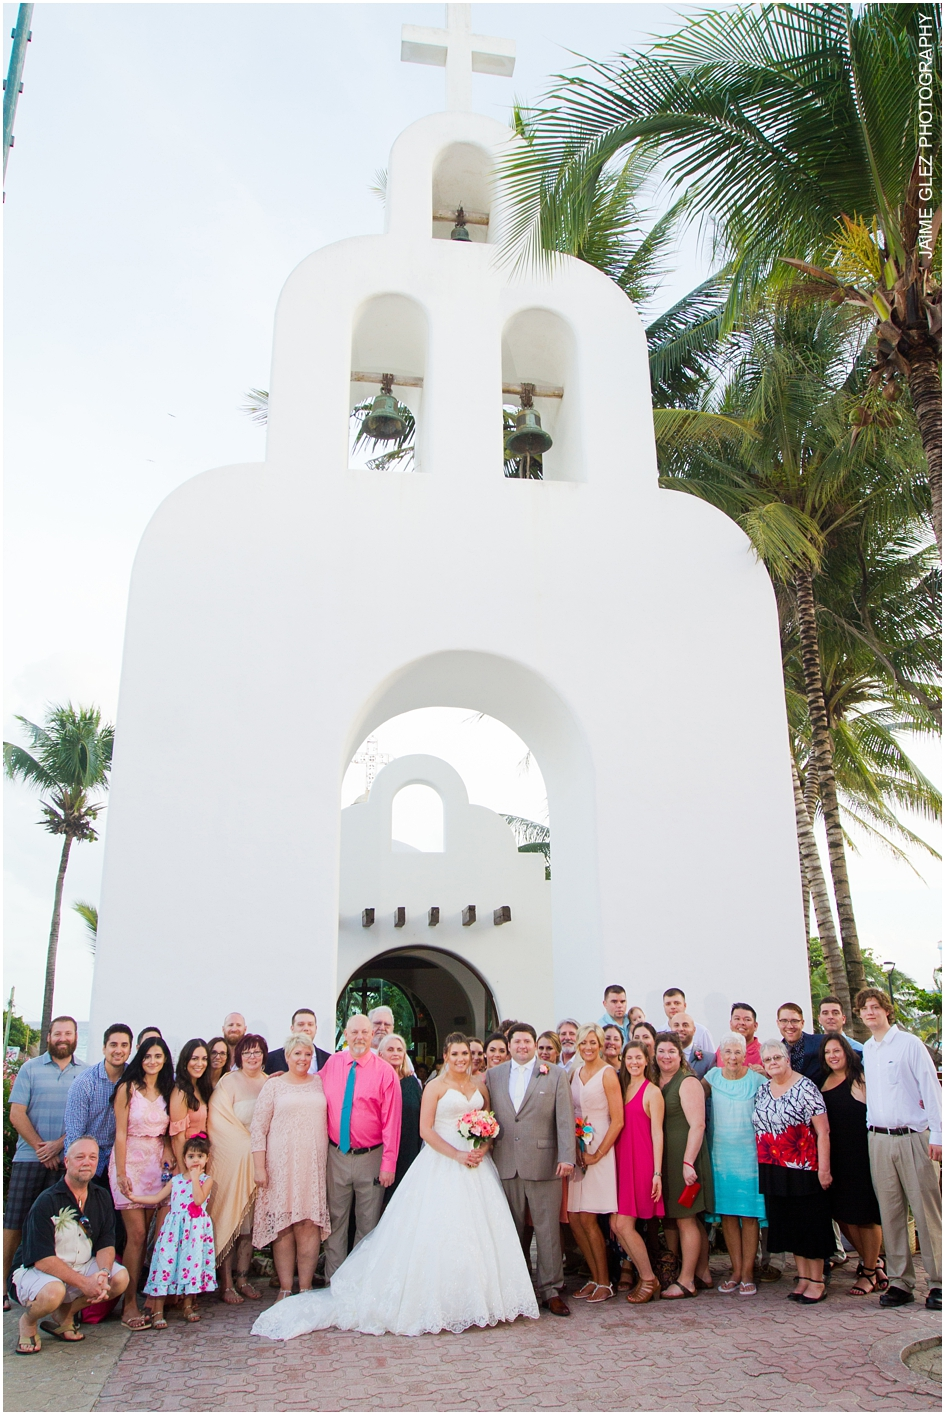 Family and friends after wedding ceremony at Nuestra Señora del Carmen Church in Playa del Carmen.